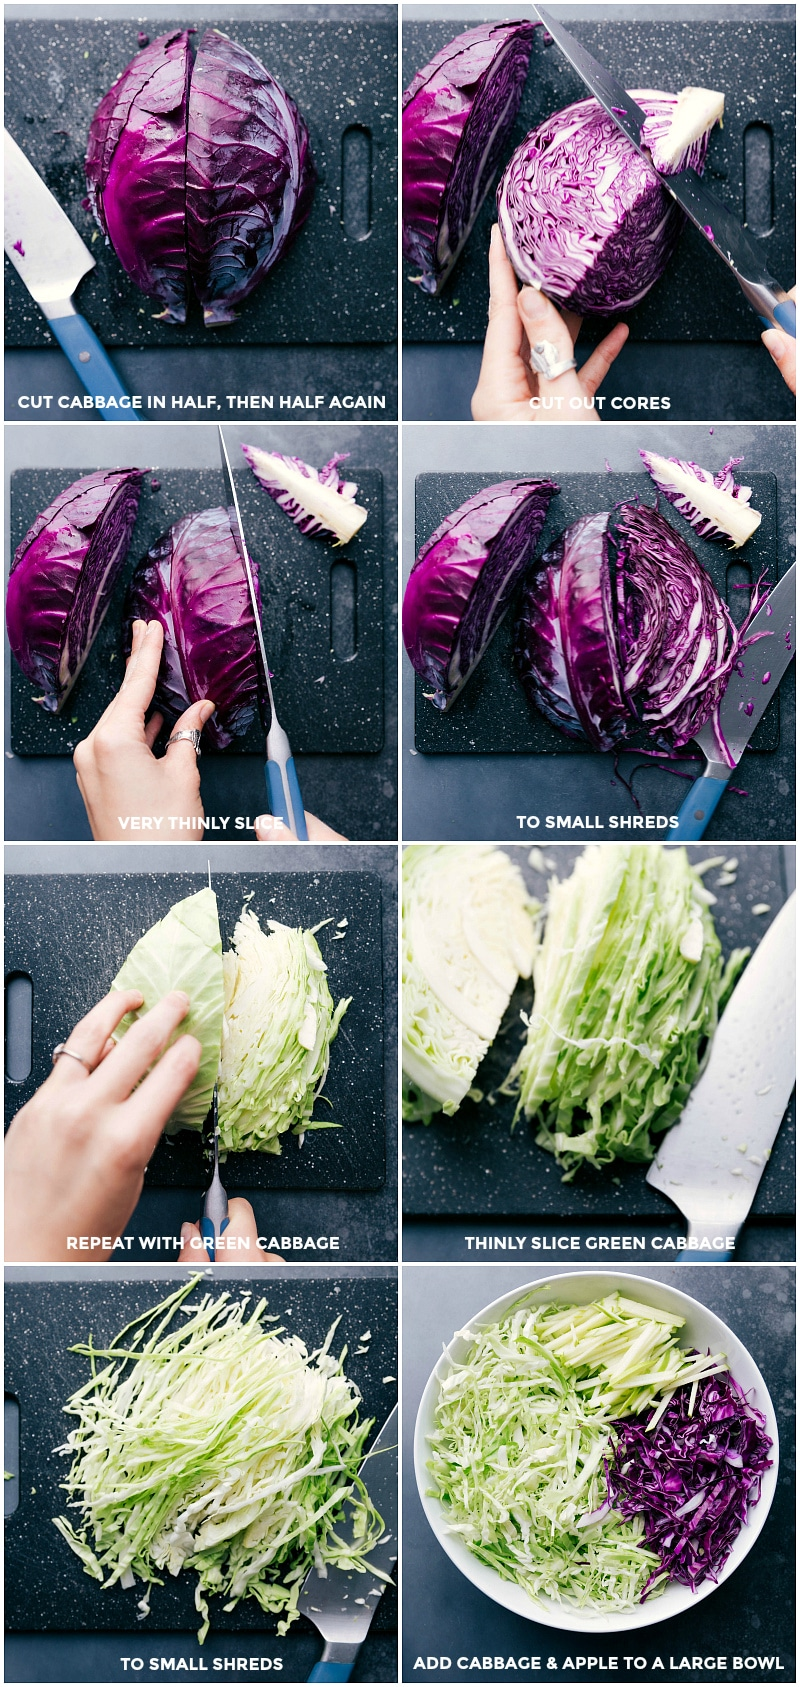 Process shots-- images of the red and green cabbage being quartered; thinly slicing for the coleslaw; adding matchstick apple slices.